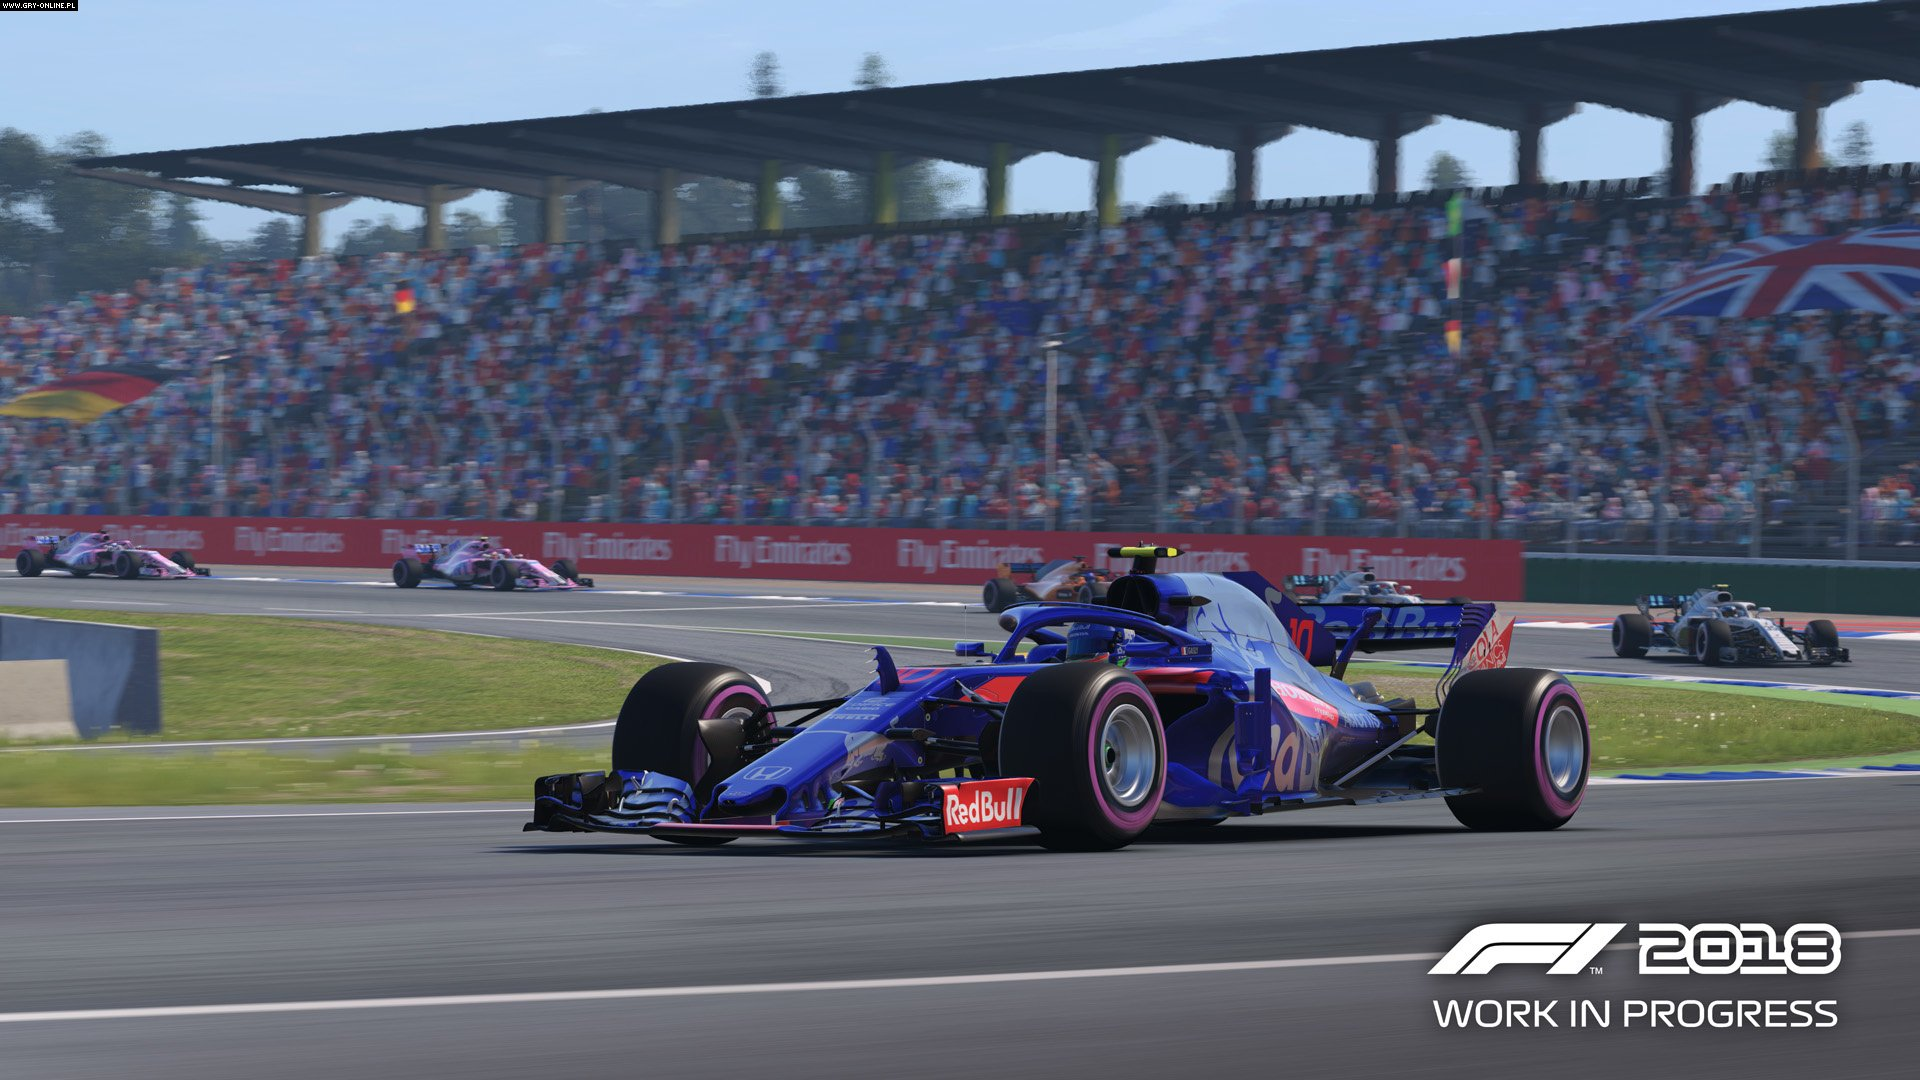 F1 2018 PC, PS4, XONE Games Image 8/43, Codemasters Software